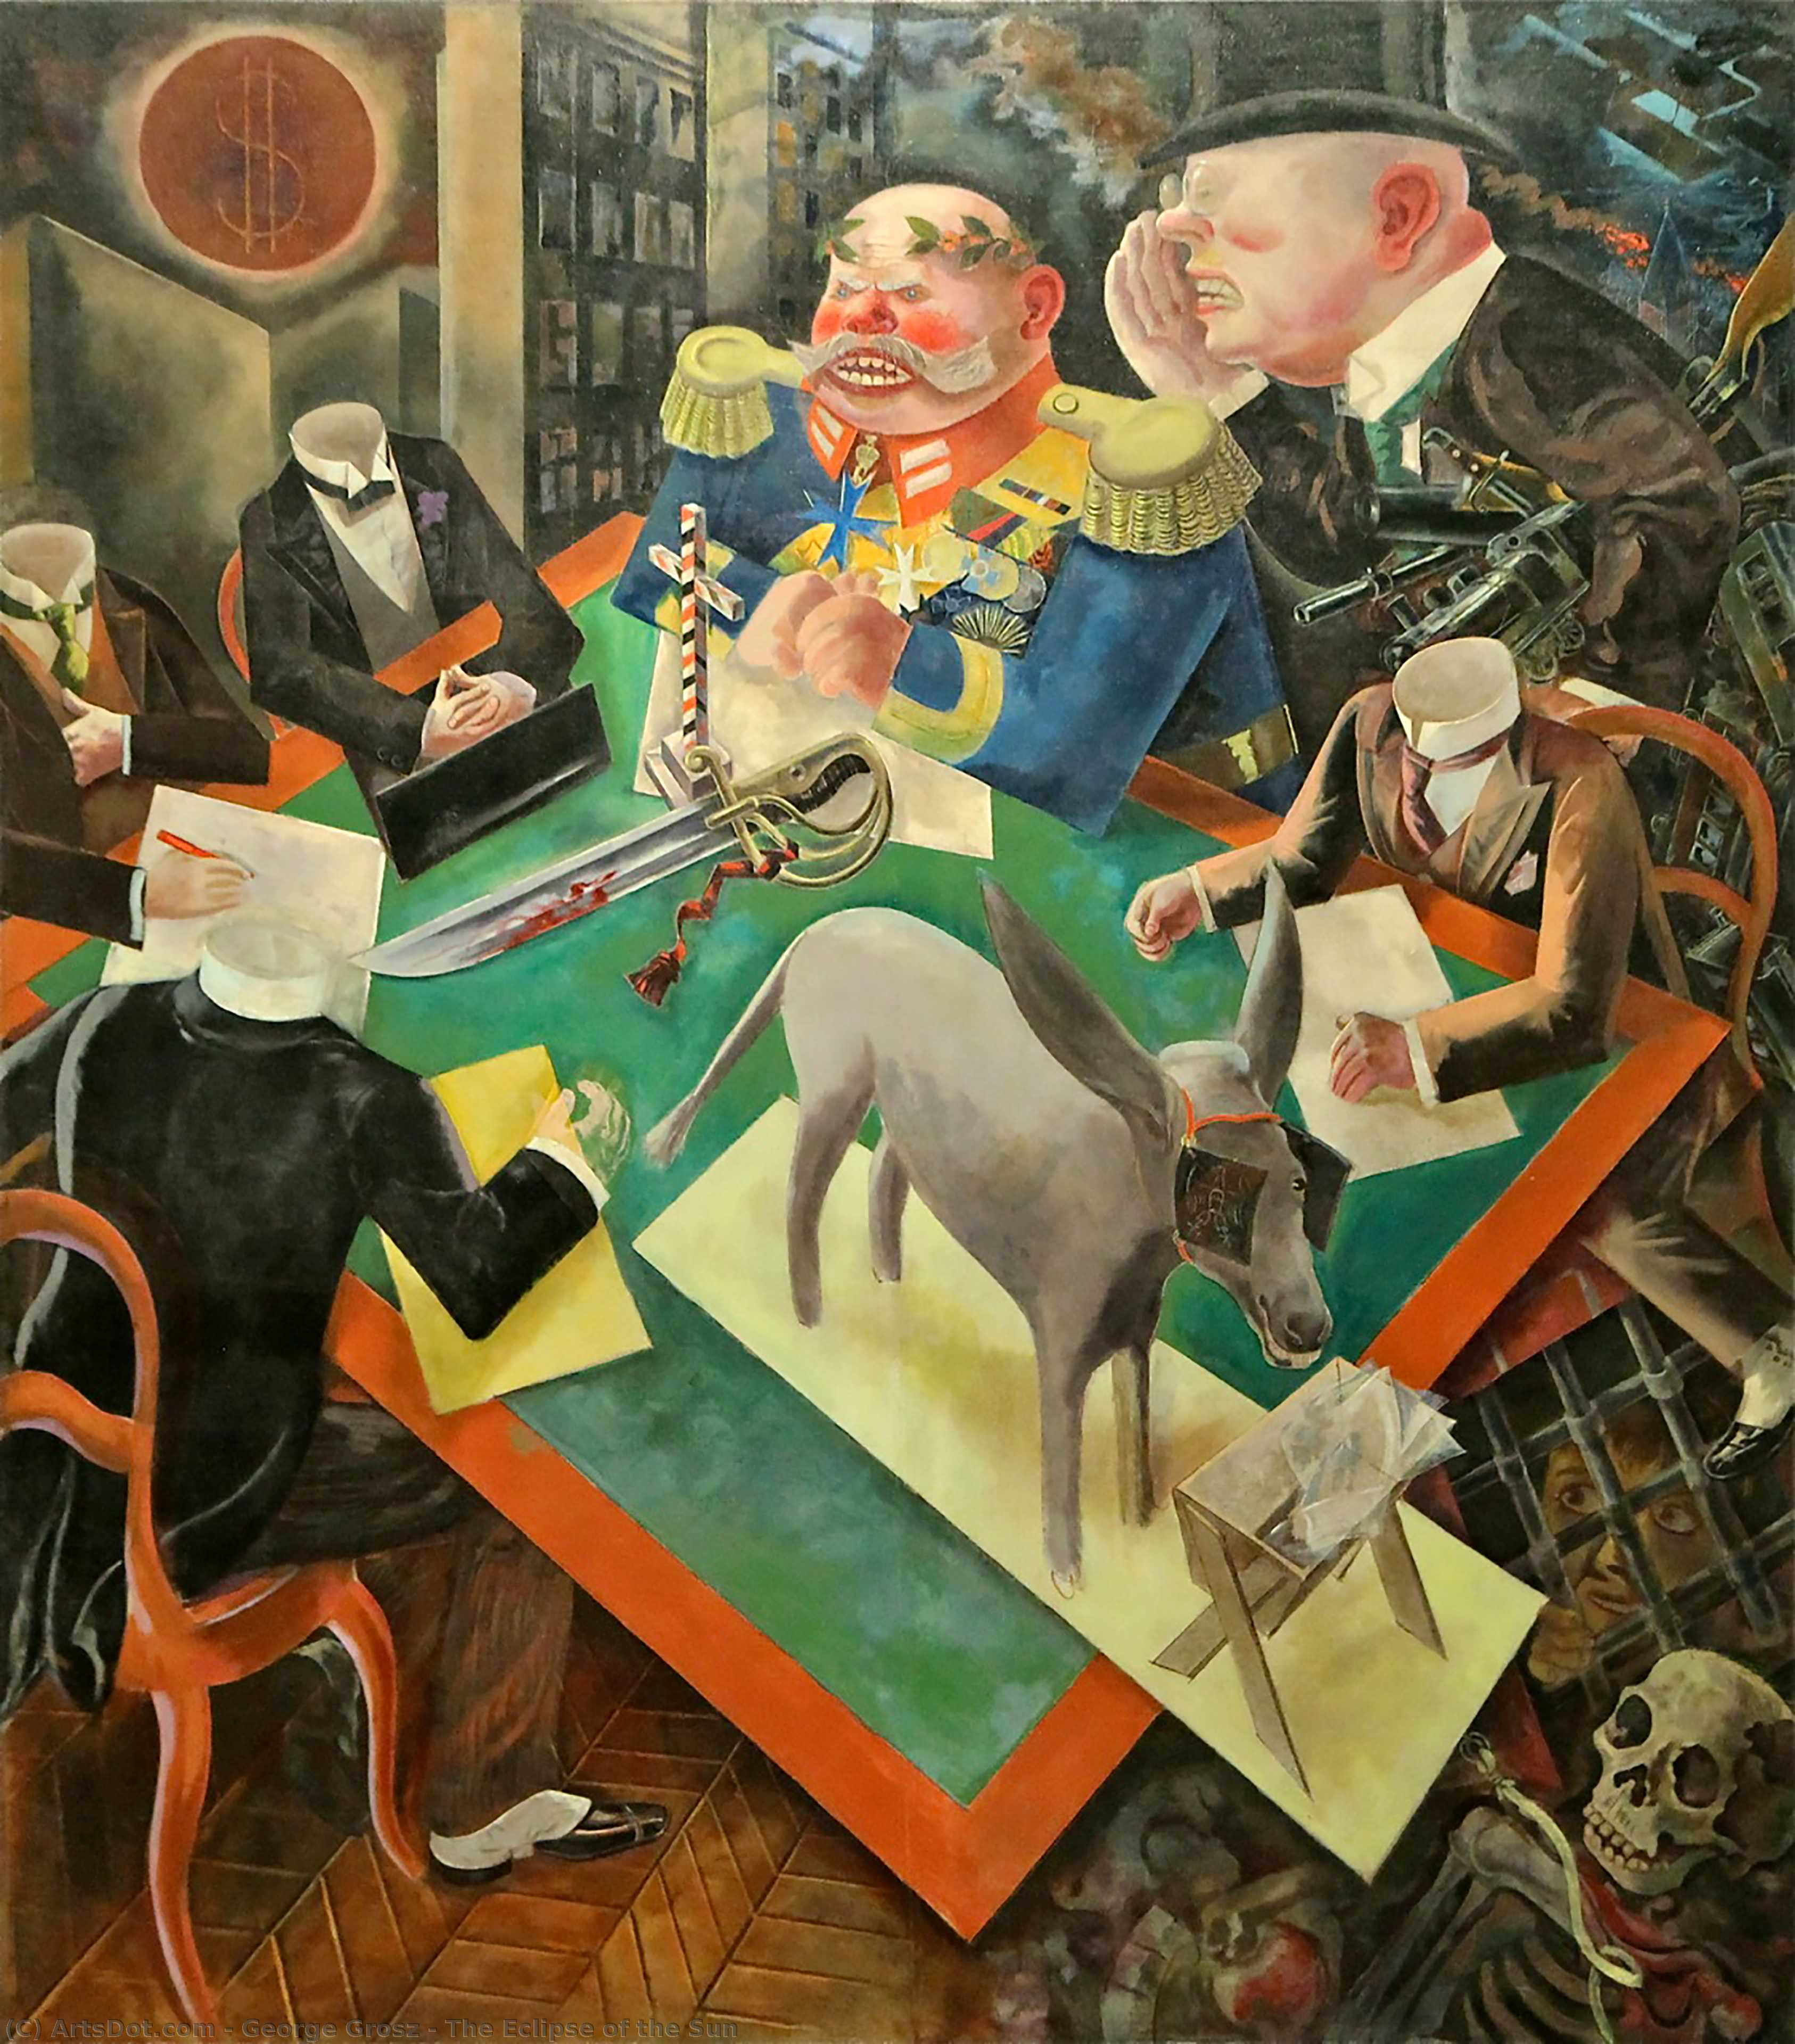 george grosz dada The daily artist birthday from tml arts: georges grosz (1893-1959) member of berlin dada, his satire against authoritarianism is equally relevant today.